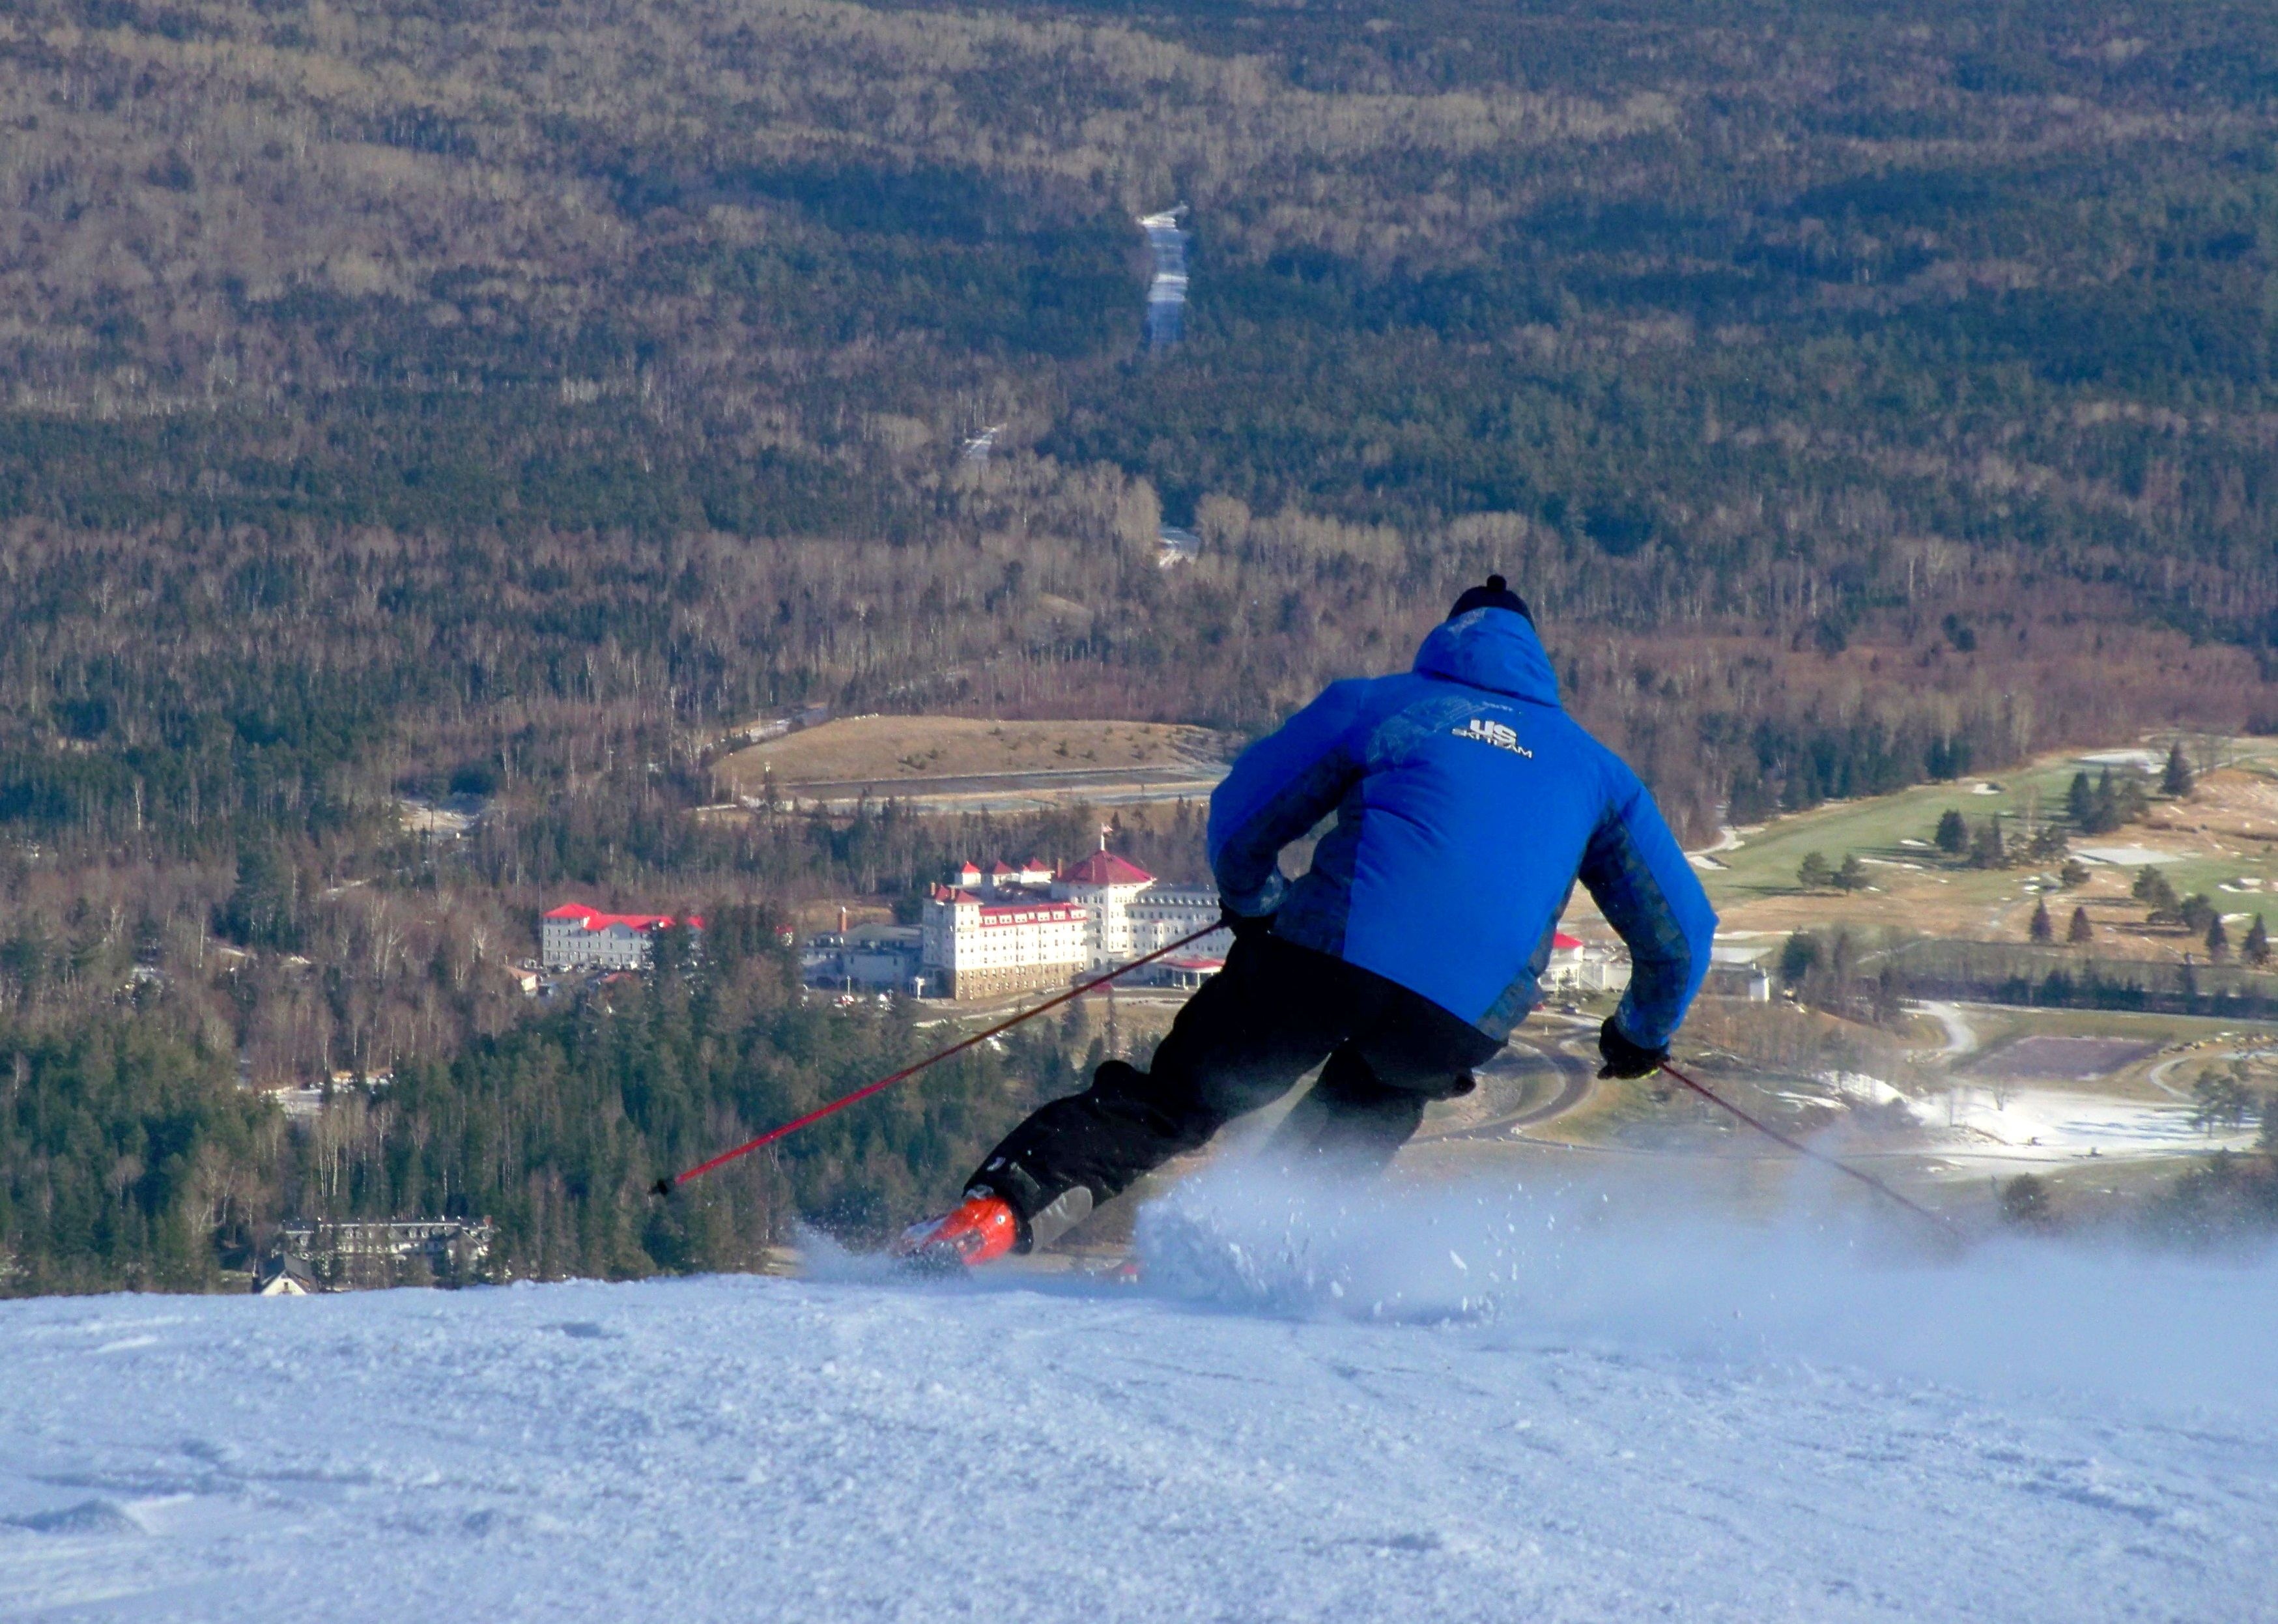 fun pics from bretton woods in and around mt washington valley nh